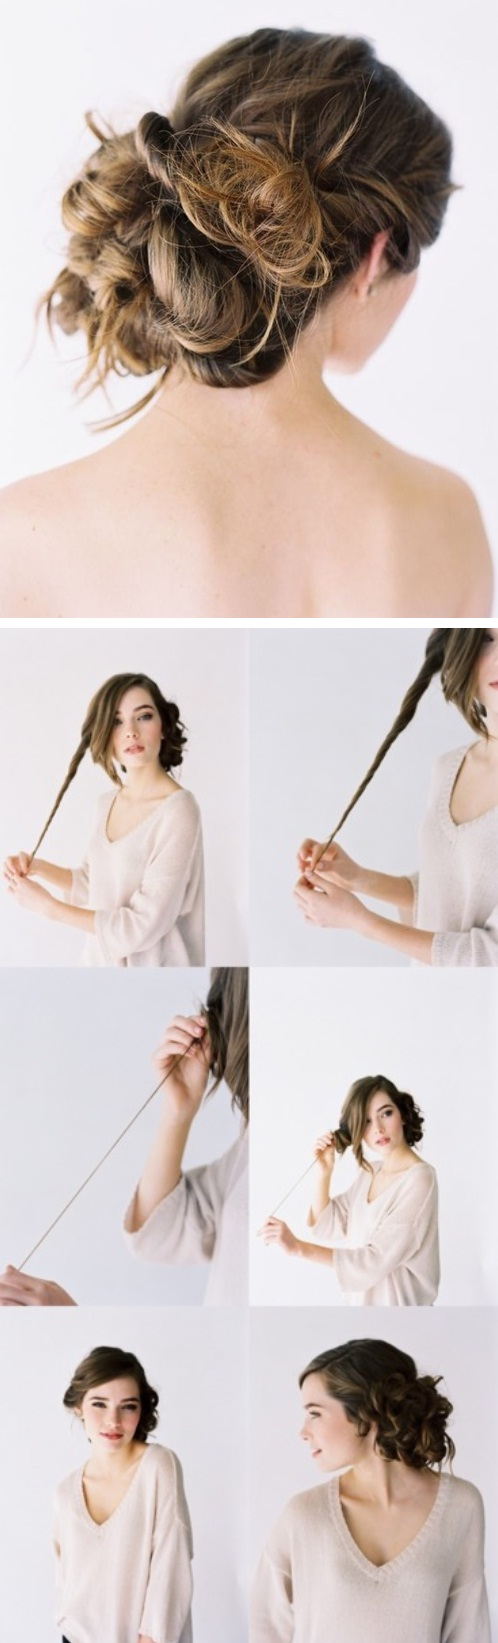 Such a cool tutorial!   Beauty Tips and Hair Ideas   Pinterest ...